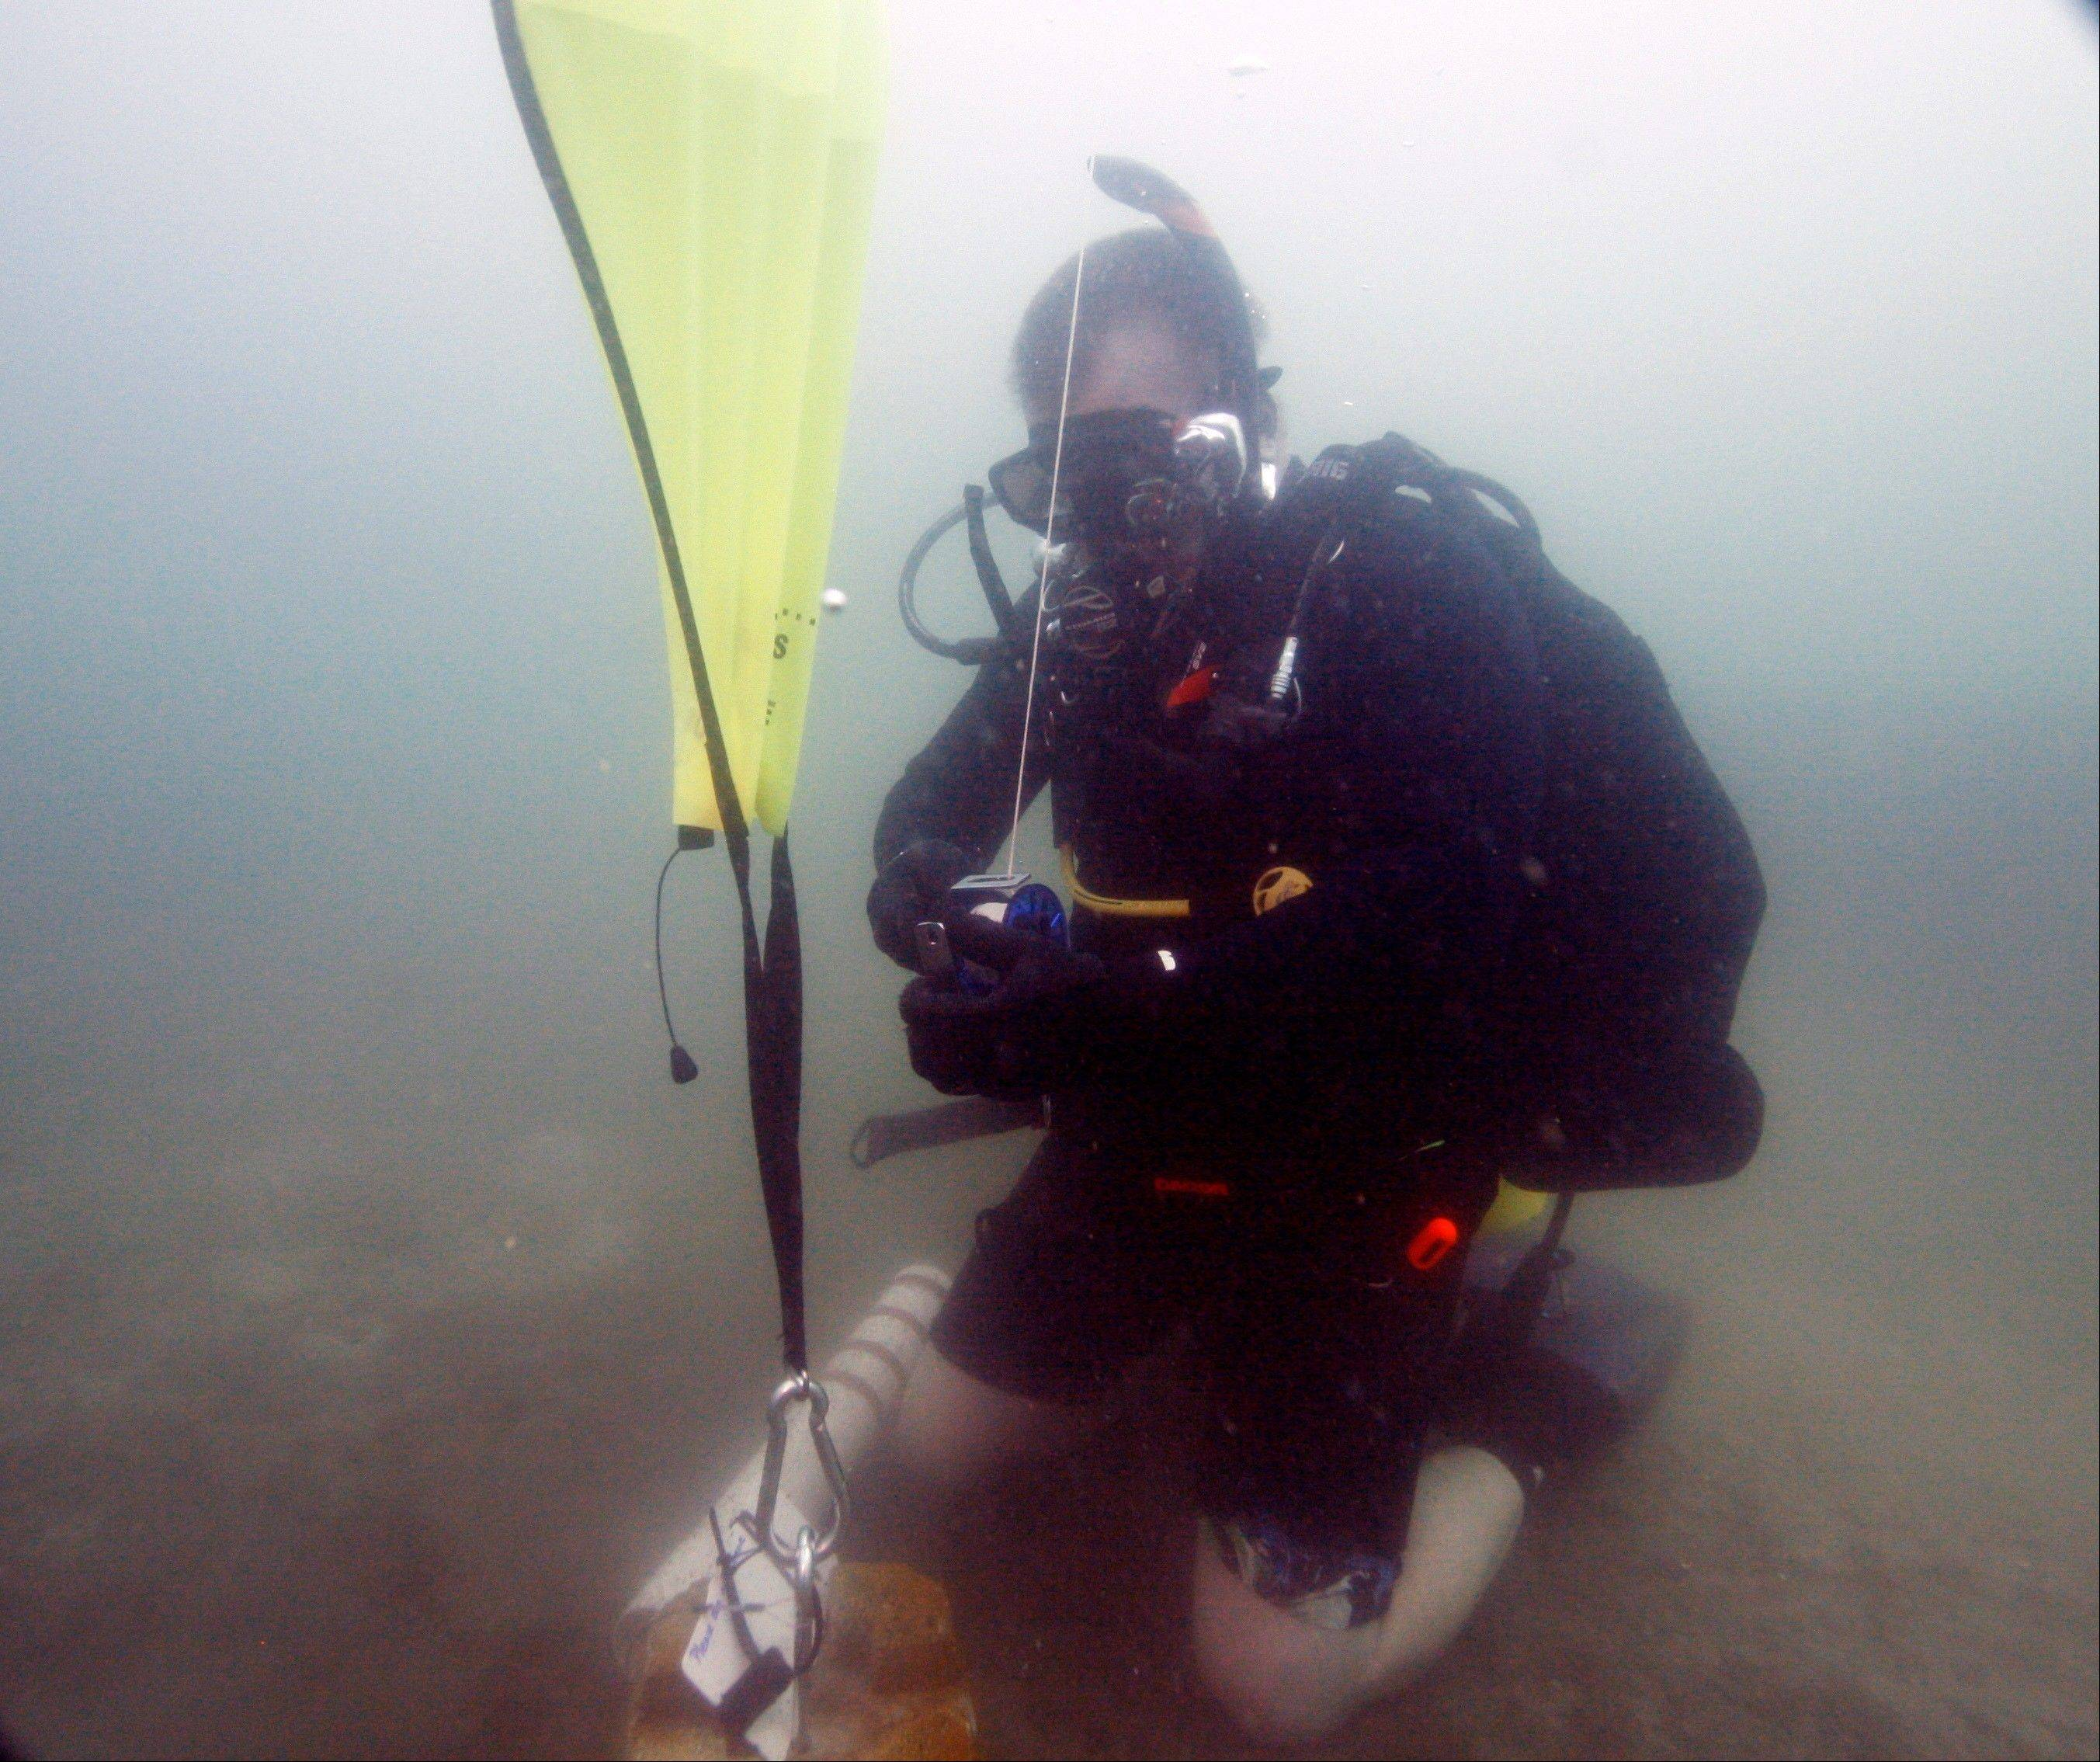 Kenny Jenkins uses a lift bag to place a weight and geocache marker. About 100 geocaches around the world today are only accessible with scuba gear, according to the geocaching.com database.